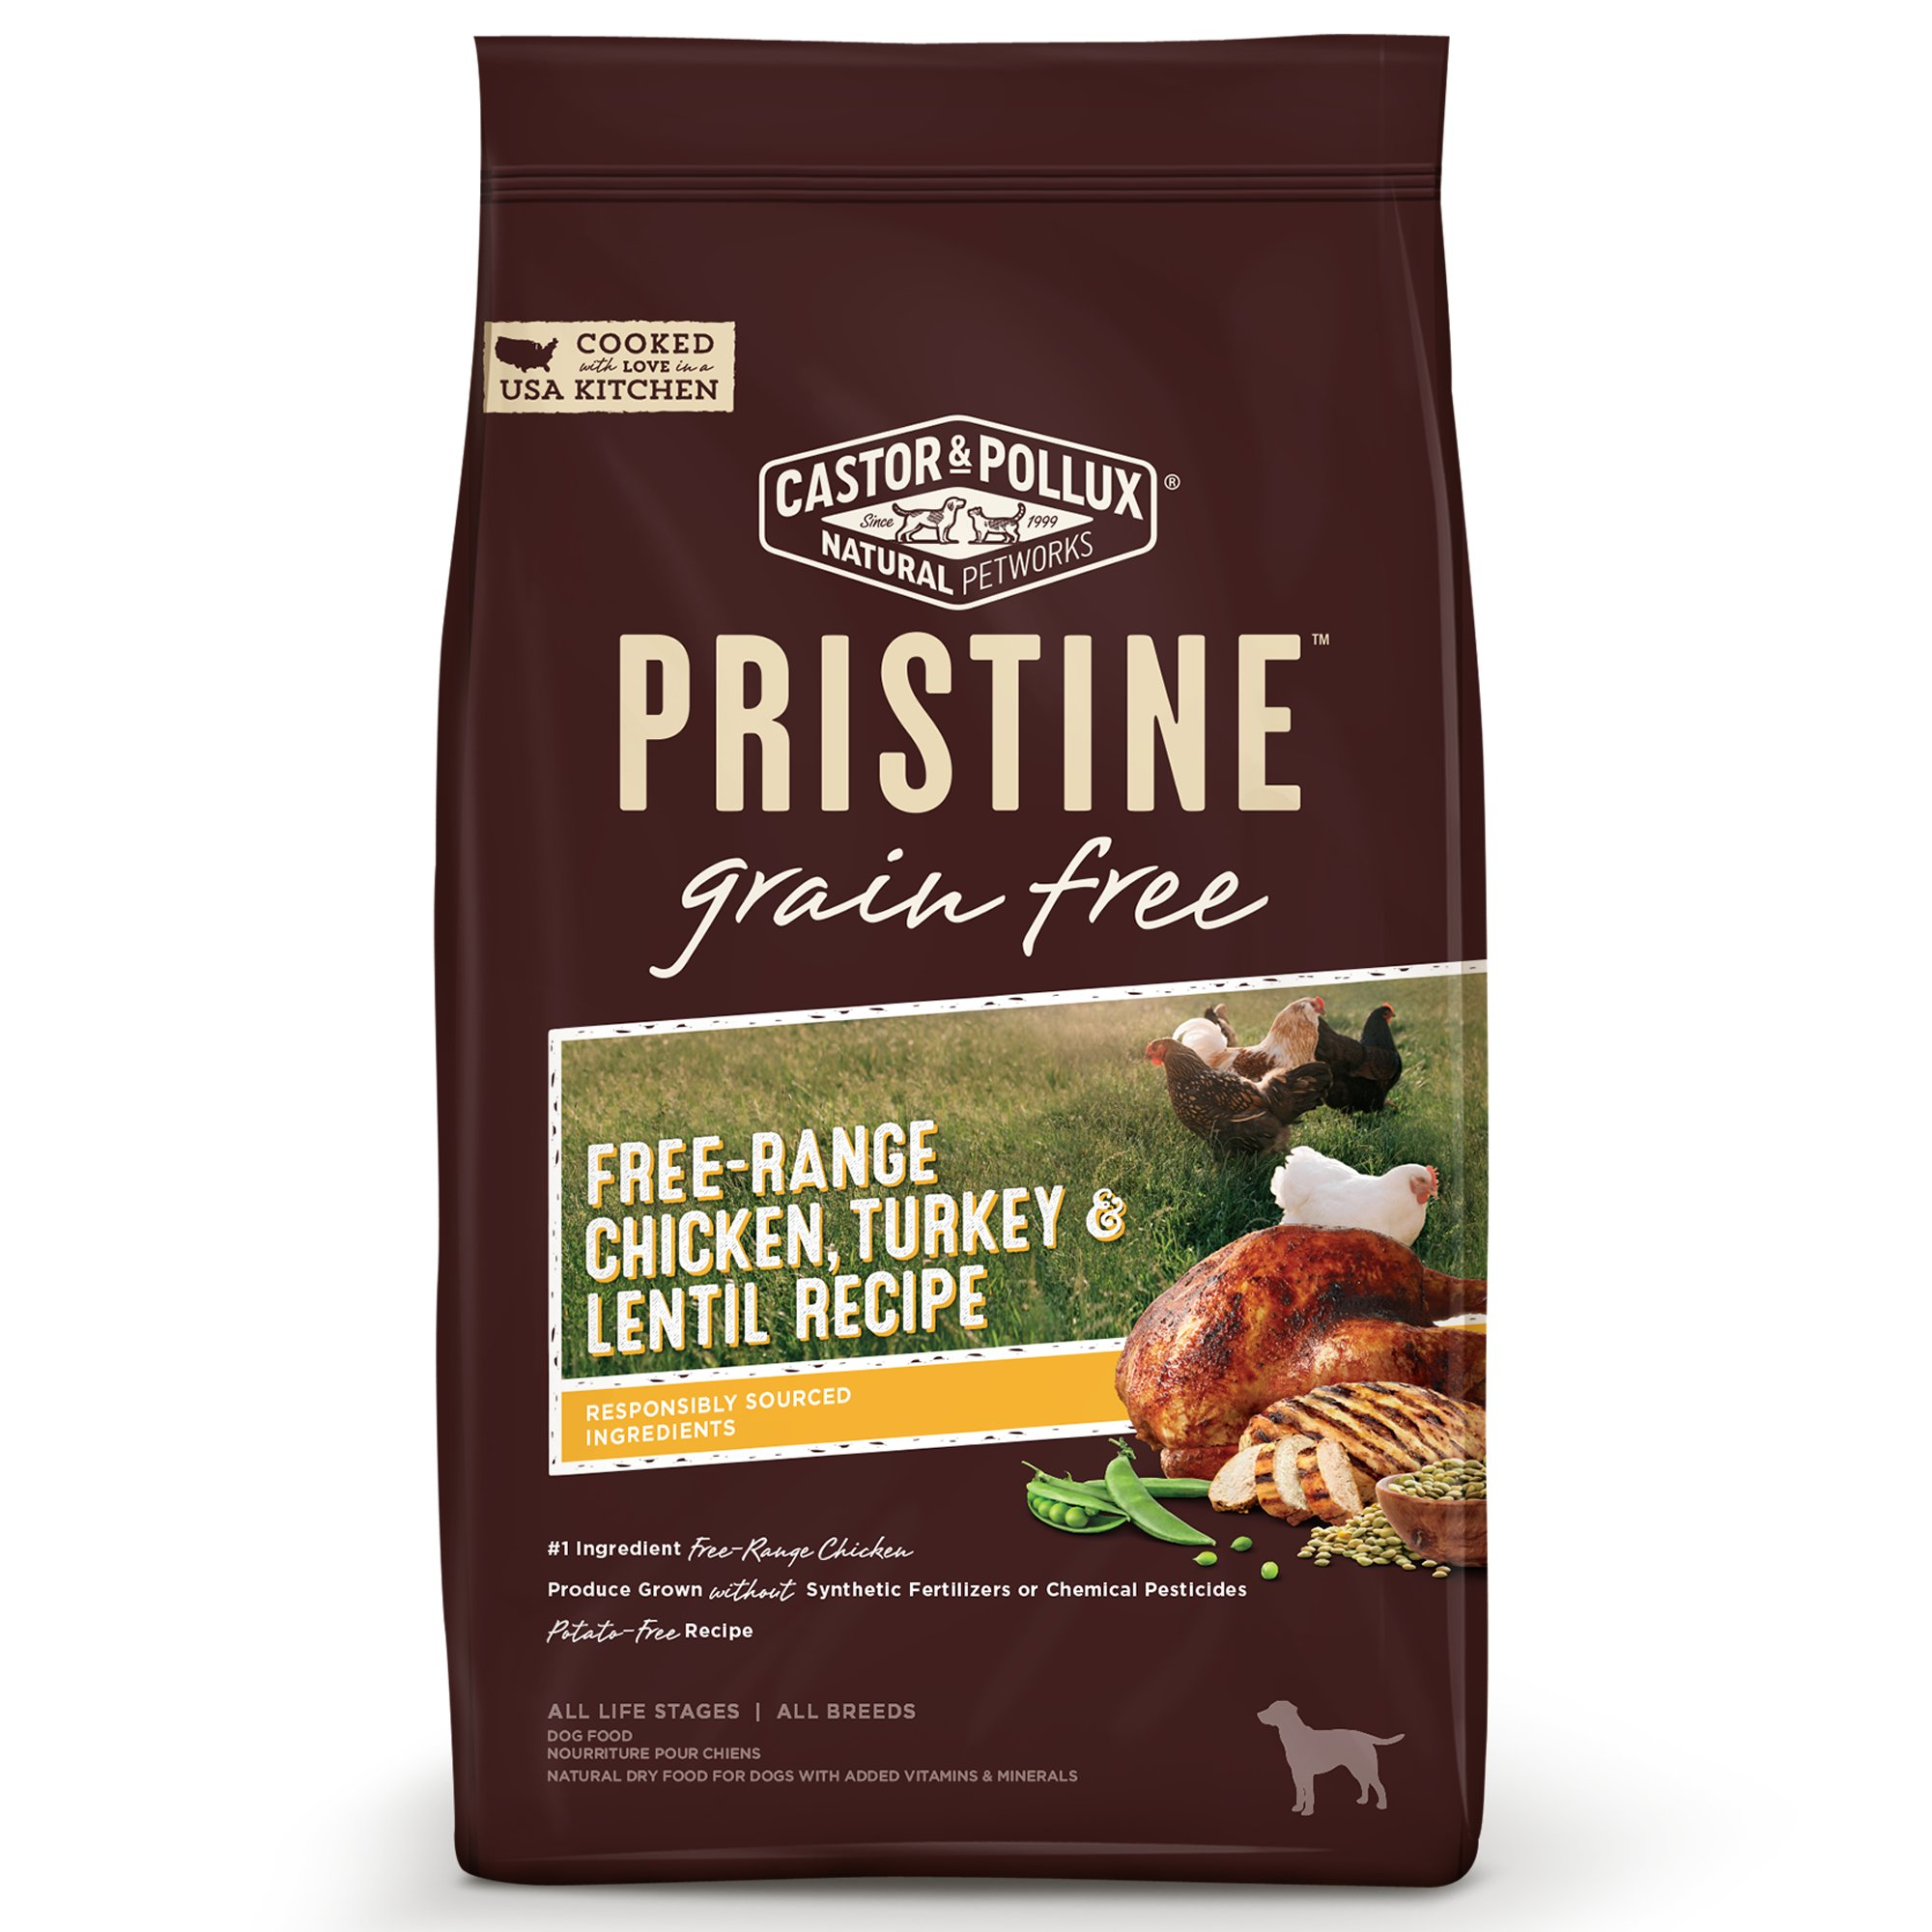 Castor & Pollux Pristine Grain Free Free-Range Chicken, Turkey and Lentil Recipe Dry Dog Food, 10 lbs.